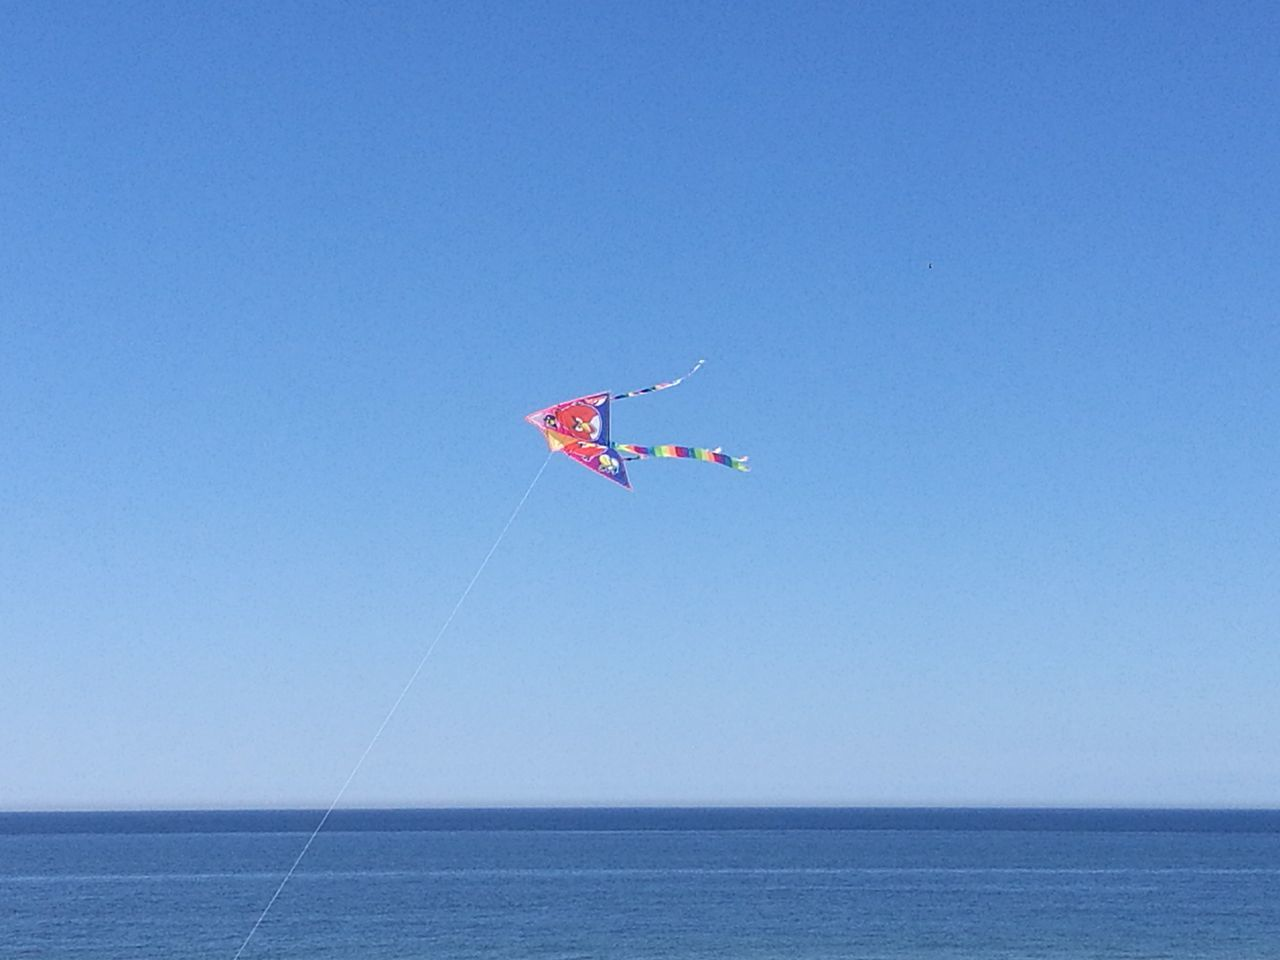 sea, clear sky, copy space, horizon over water, nature, kite, blue, water, day, outdoors, flying, beauty in nature, no people, scenics, sky